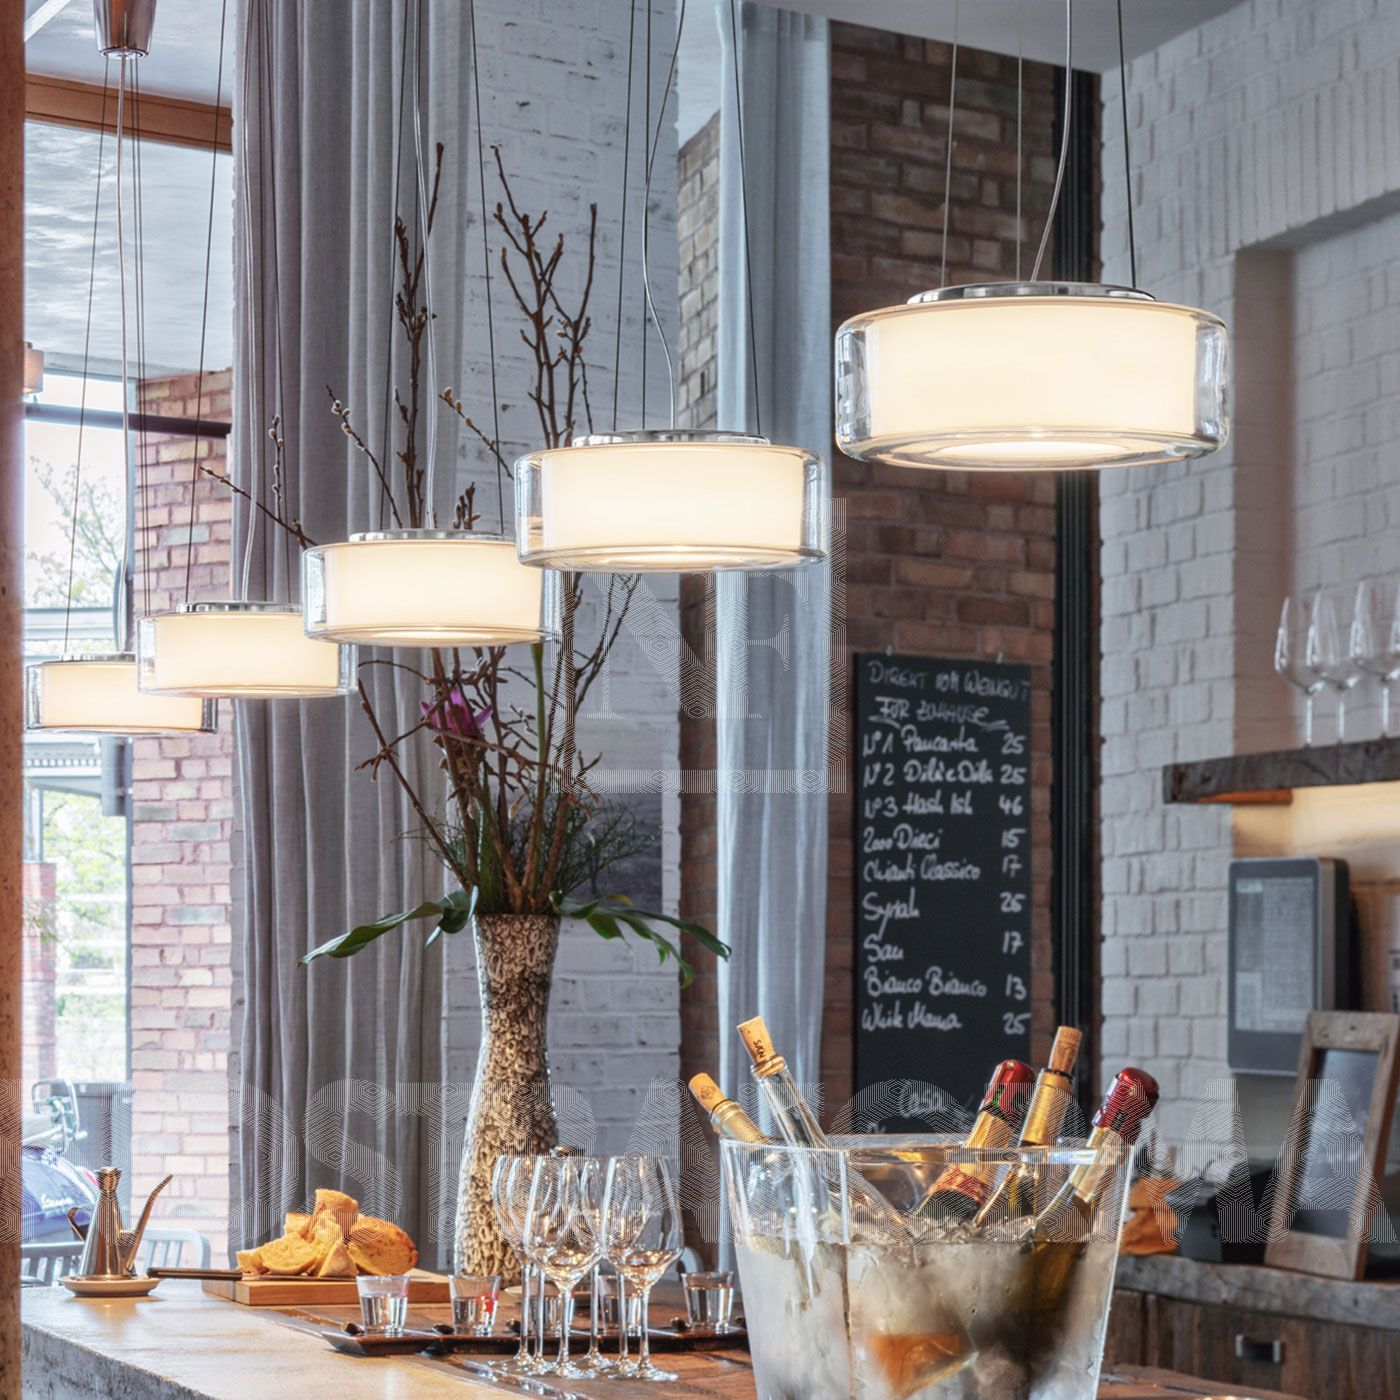 Amazing Pendant lights Serien Lighting Curling Suspension Rope S See and buy now offer Delivery within ex warehouse securely shopping Price Guarantee